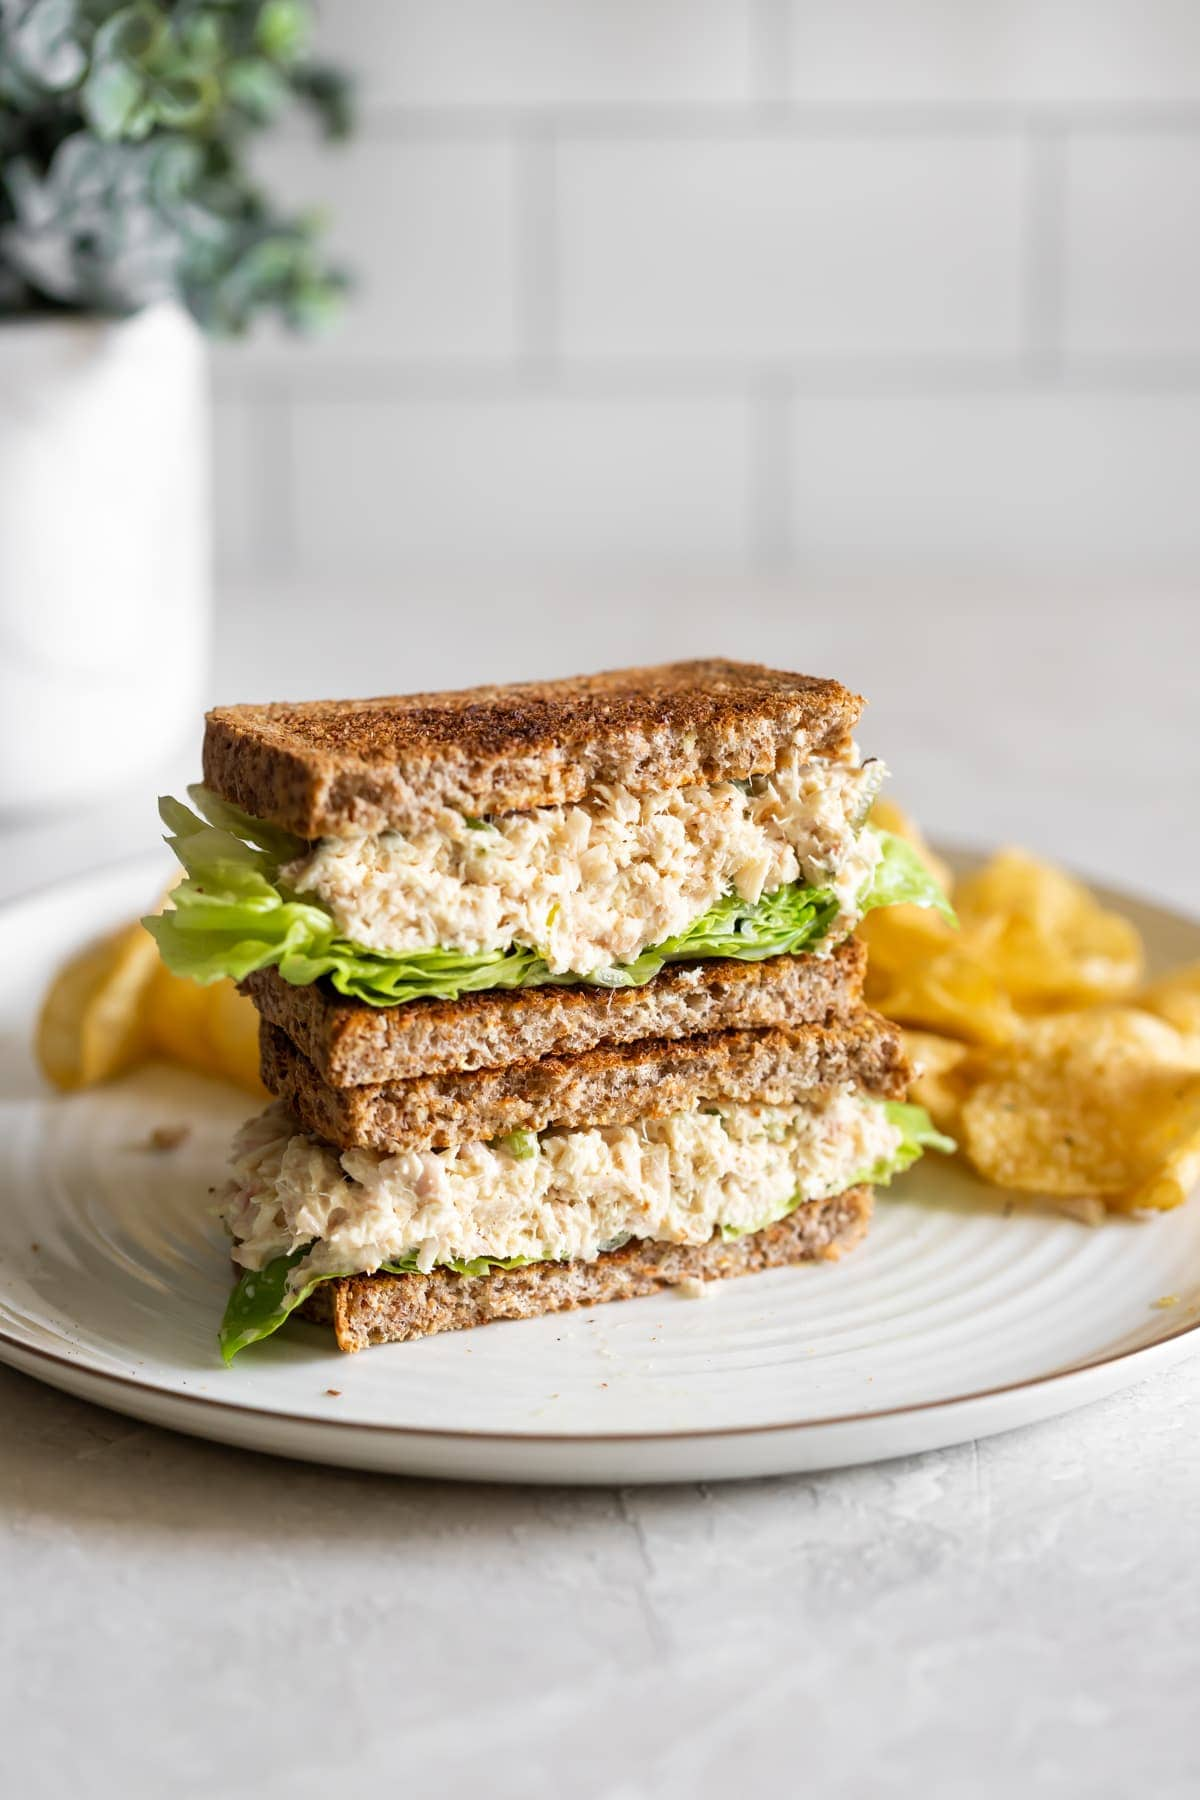 tuna salad sandwich with boston lettuce and chips on a white plate with a white background